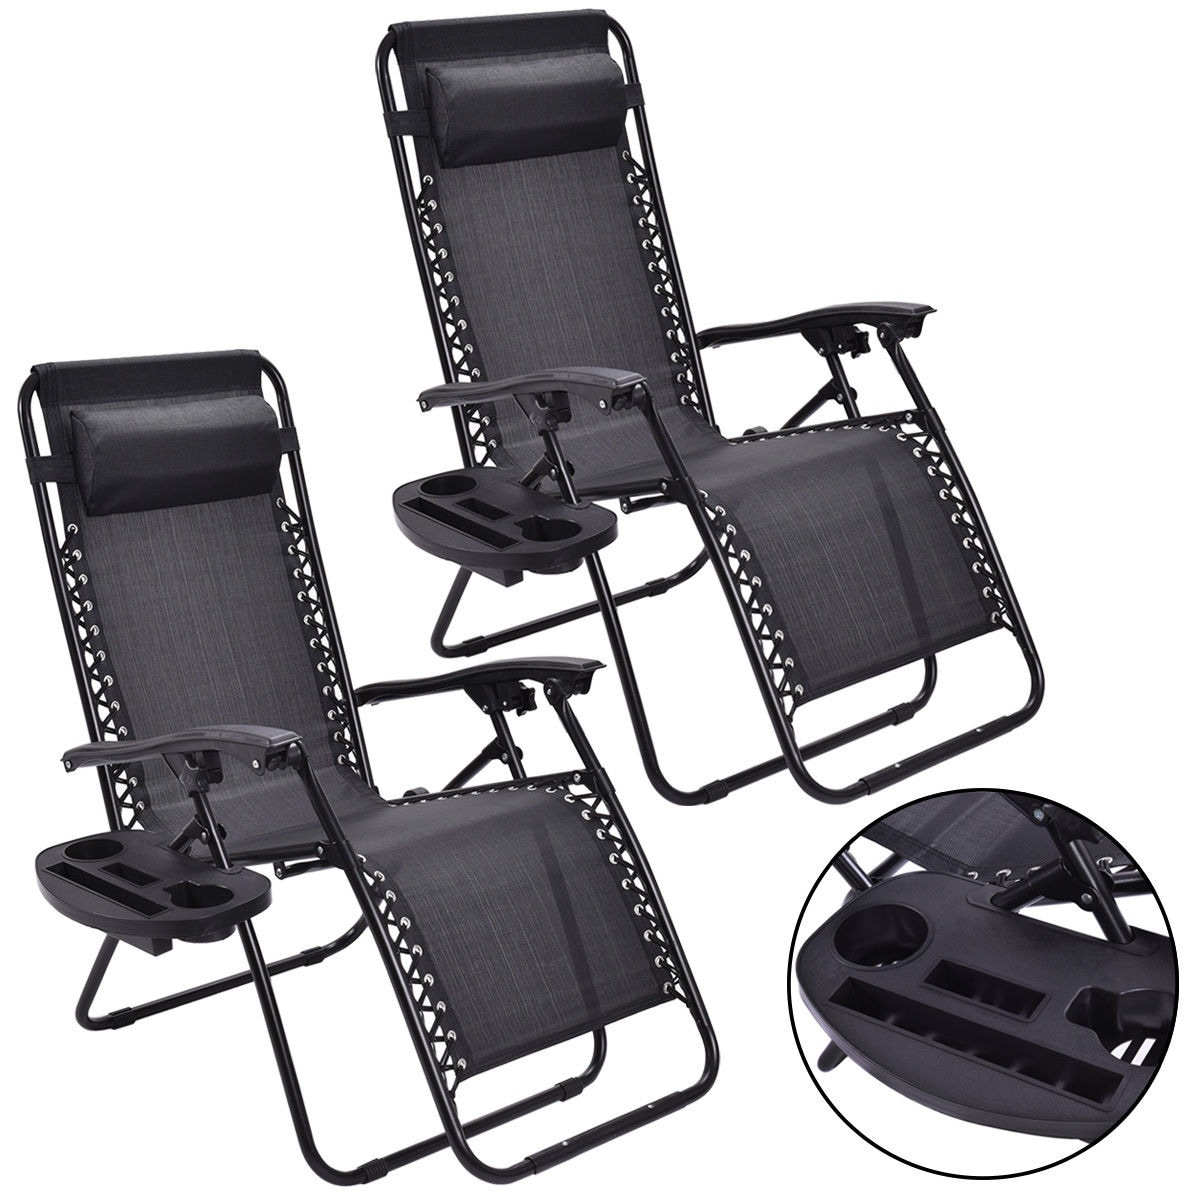 Shop Costway 2PC Zero Gravity Chairs Lounge Patio Folding Recliner Outdoor  Black W/Cup Holder   Free Shipping Today   Overstock.com   16719555